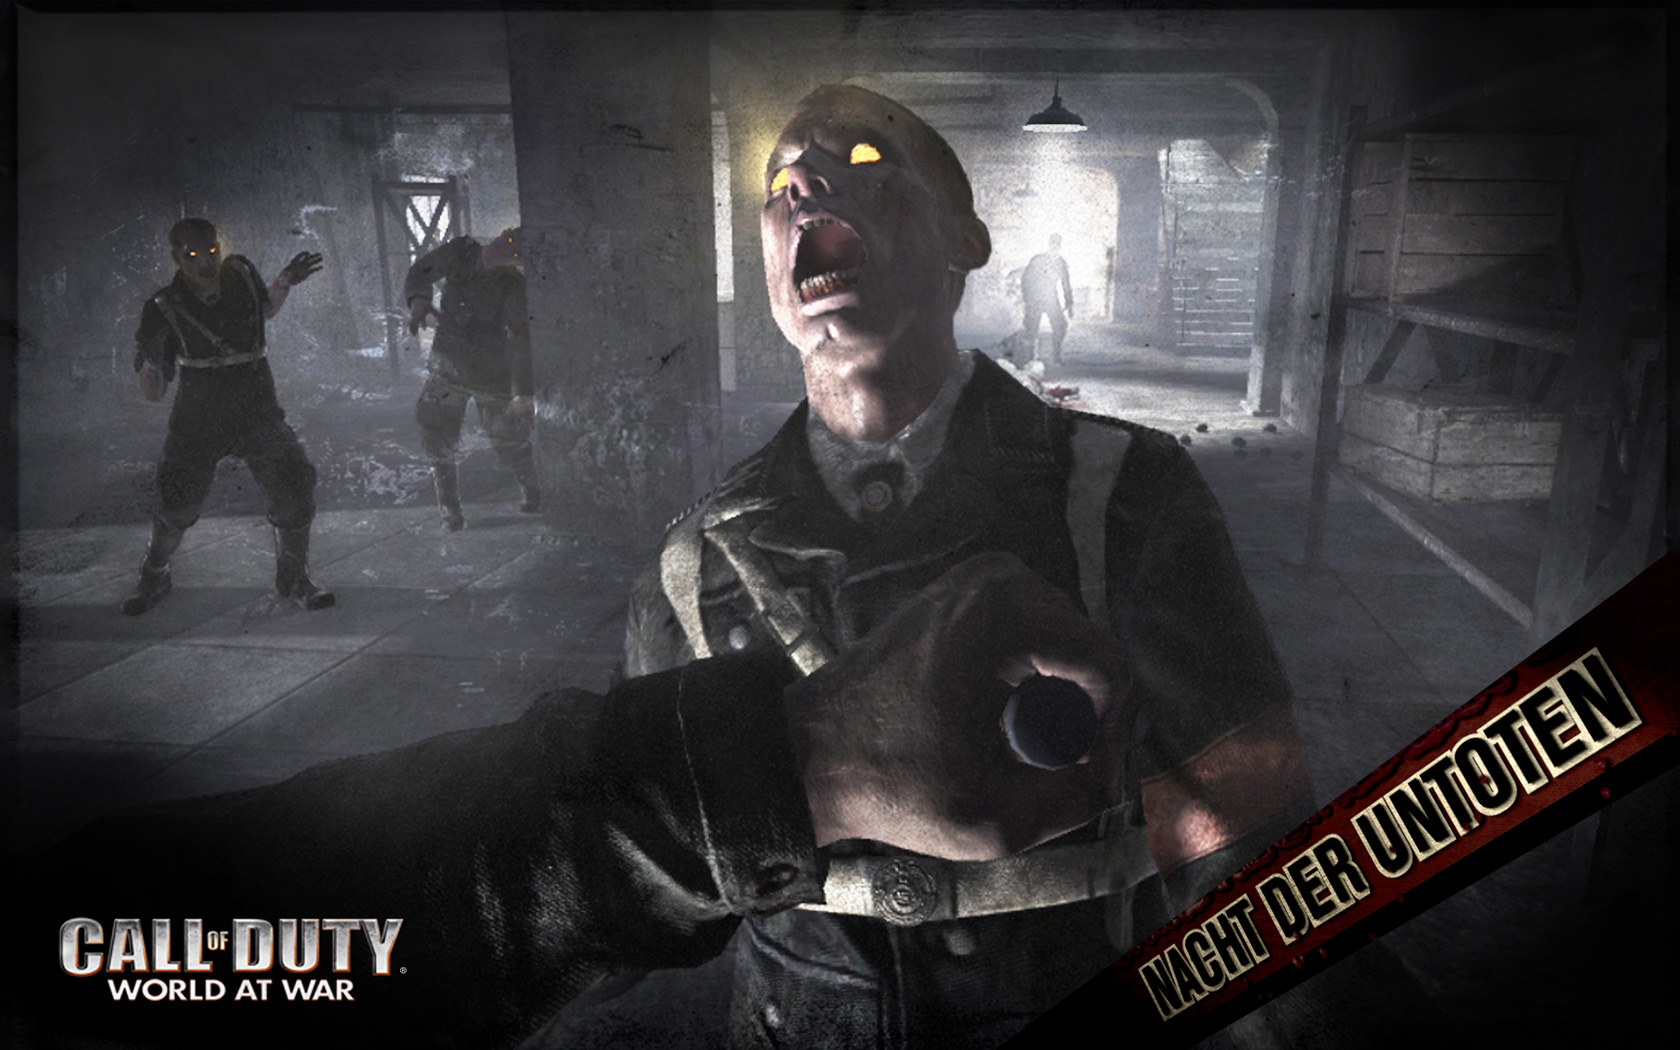 Call of Duty: World at War Wallpaper in 1680x1050